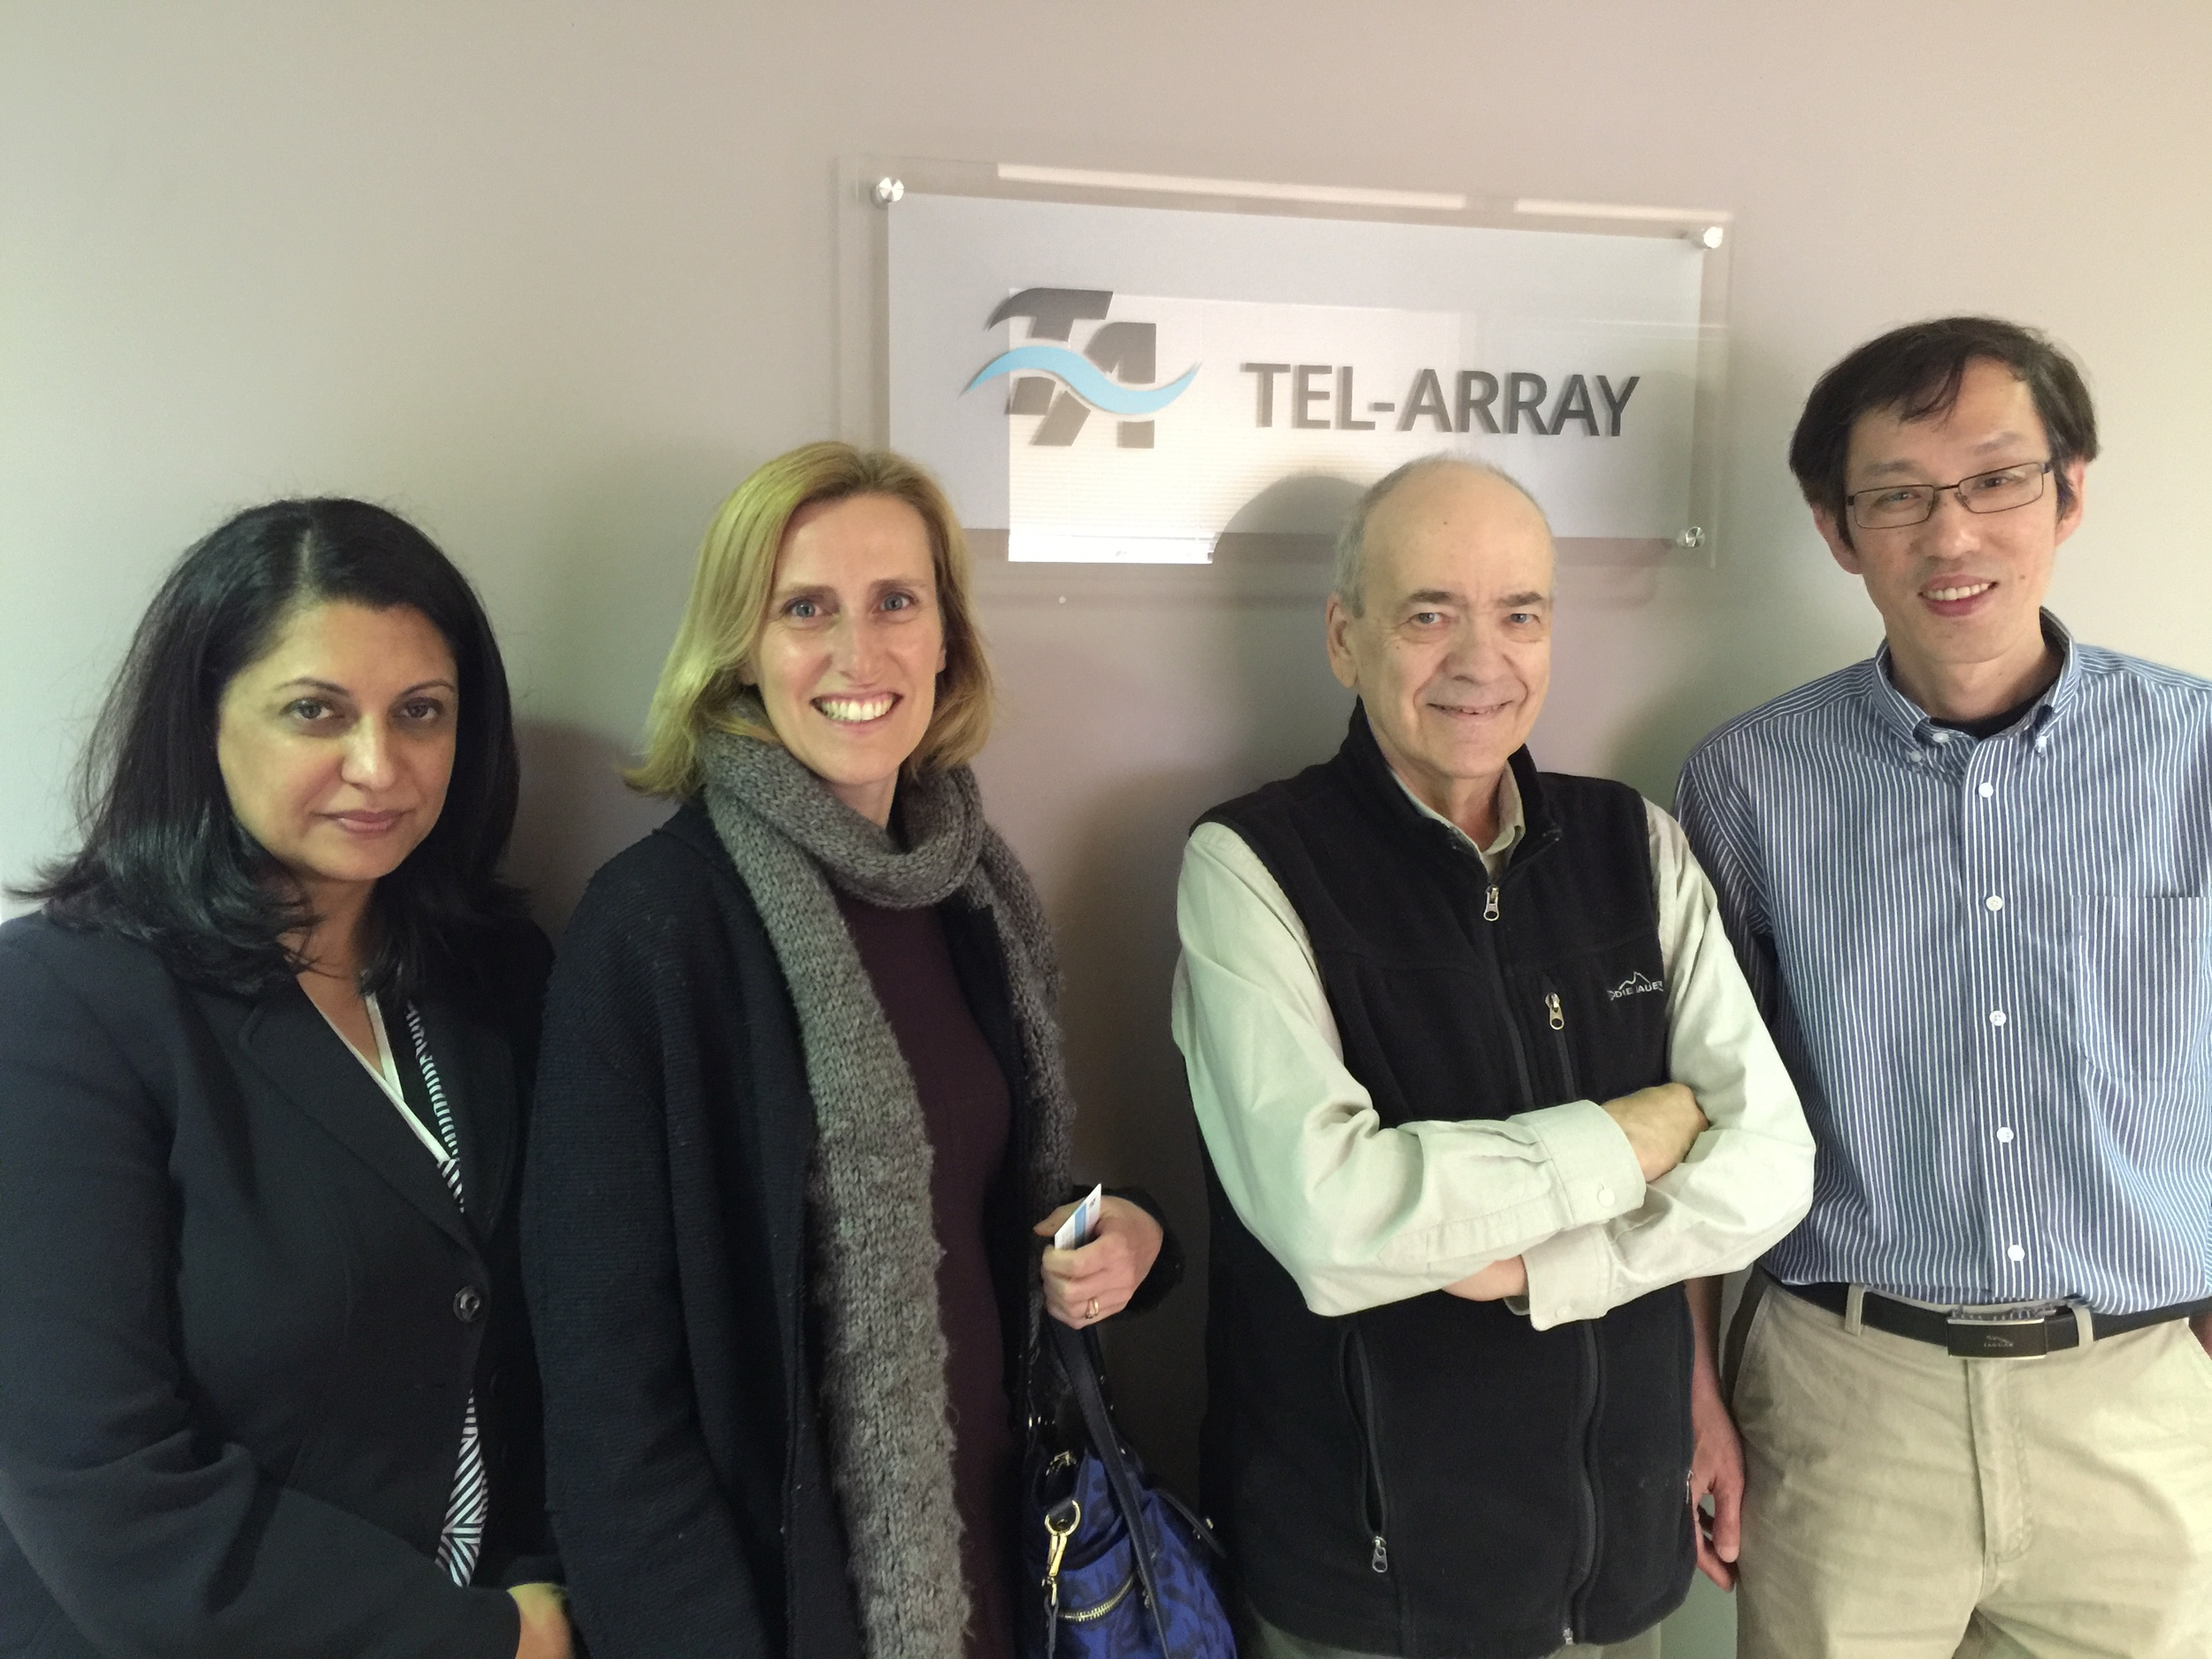 (L-R) Salima Jethani, Laetitia MacDougall and Tel-Array co-founders, Dr. William Campbell and Dr. Hong Zhang